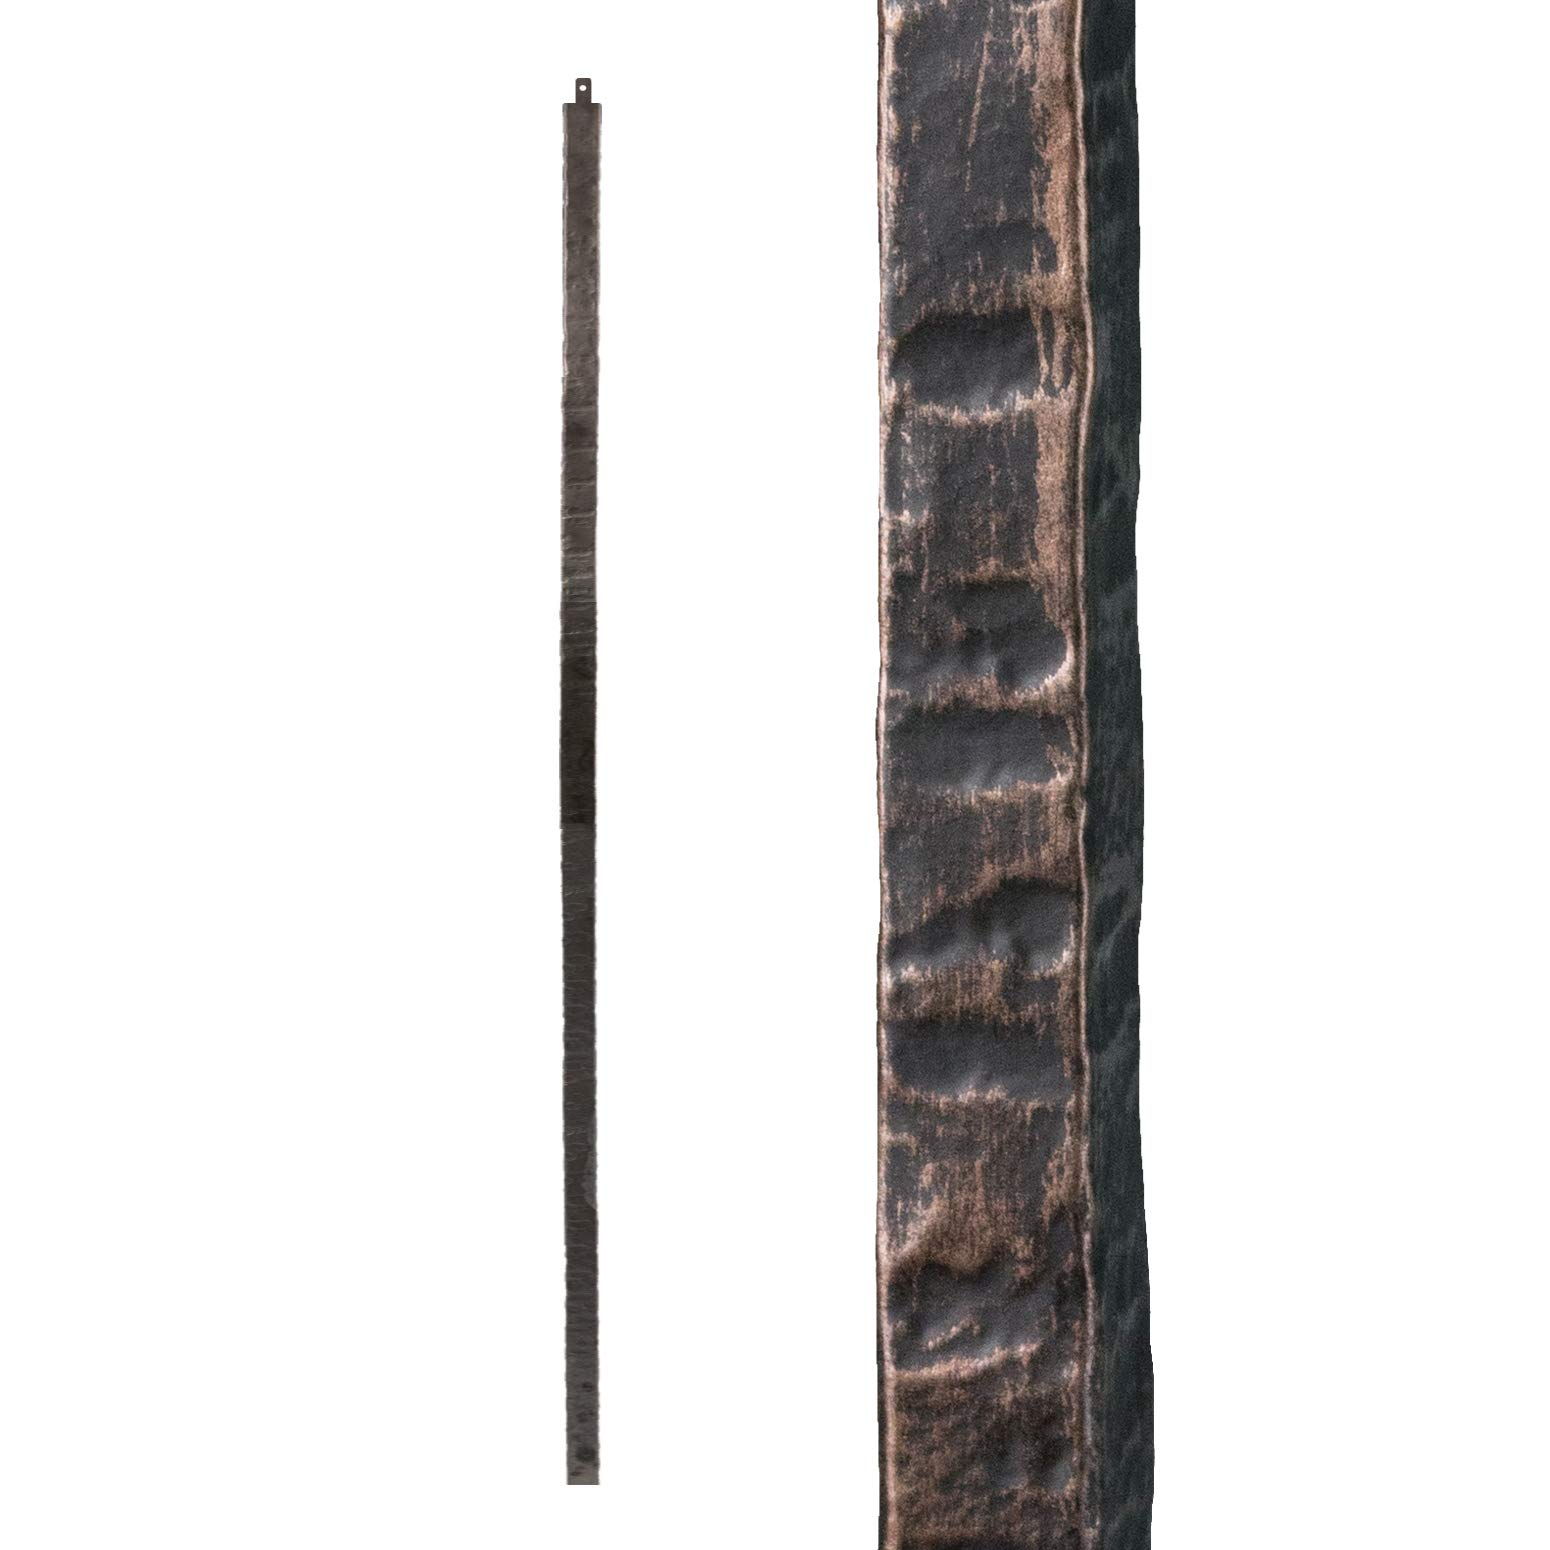 Oil Rubbed Bronze 1.1.23 Square Hammered Plain Iron Newel Support Post for Stair Remodeling by House of Forgings